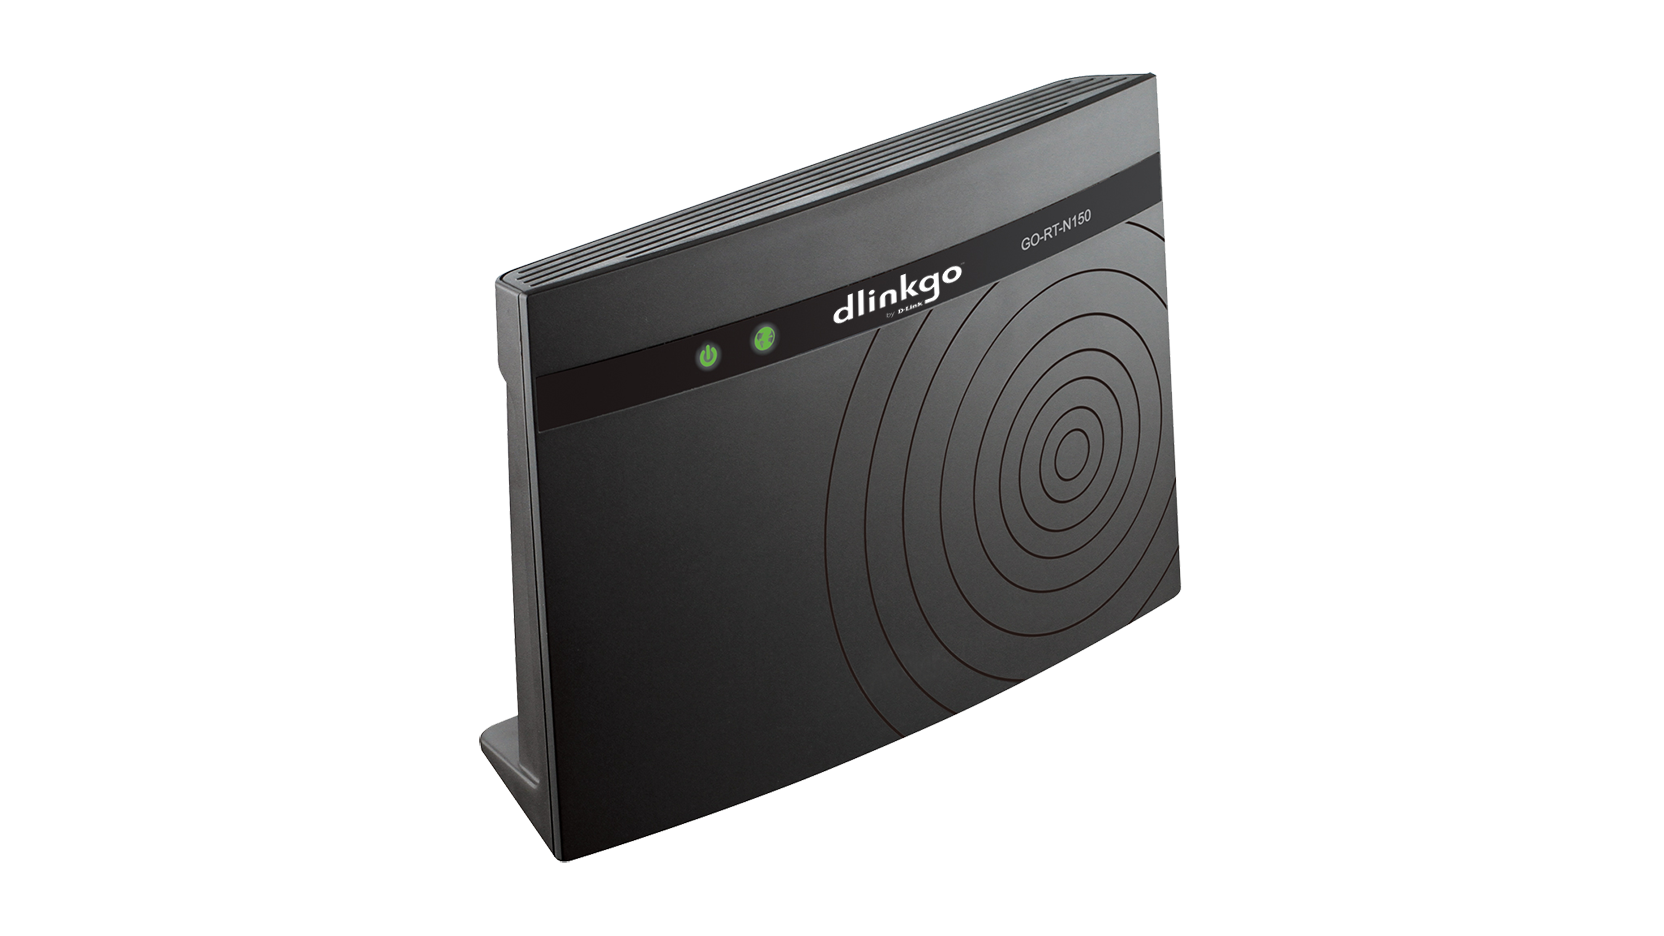 D-LINK ROUTER GO-RT-N150 DRIVER FOR WINDOWS